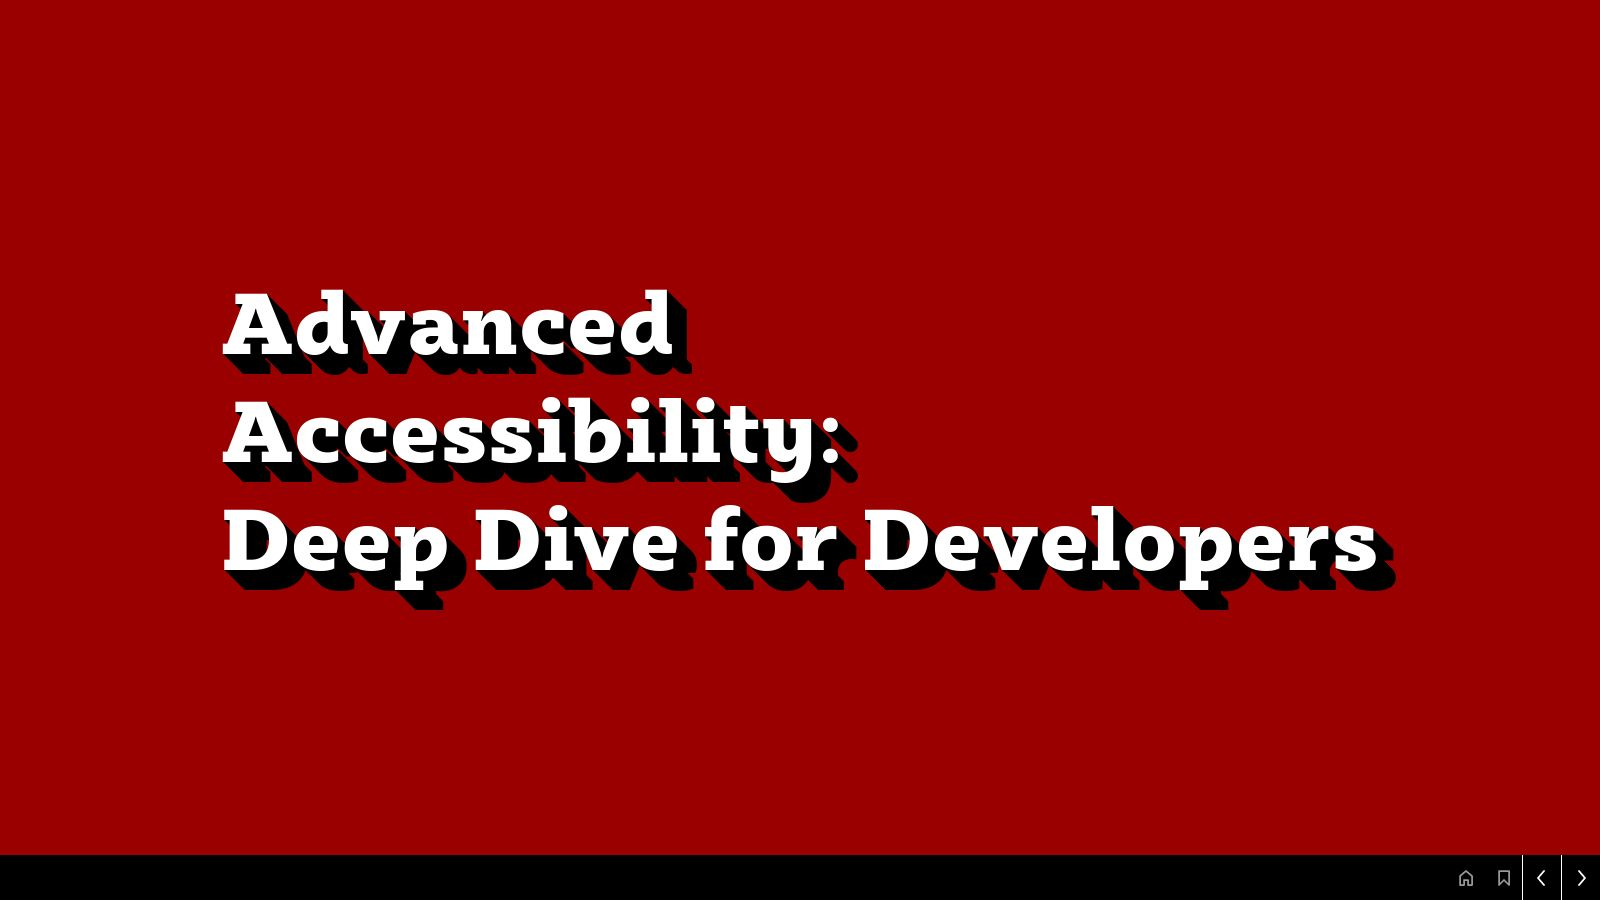 Advanced Accessibility: A Deep Dive for Developers